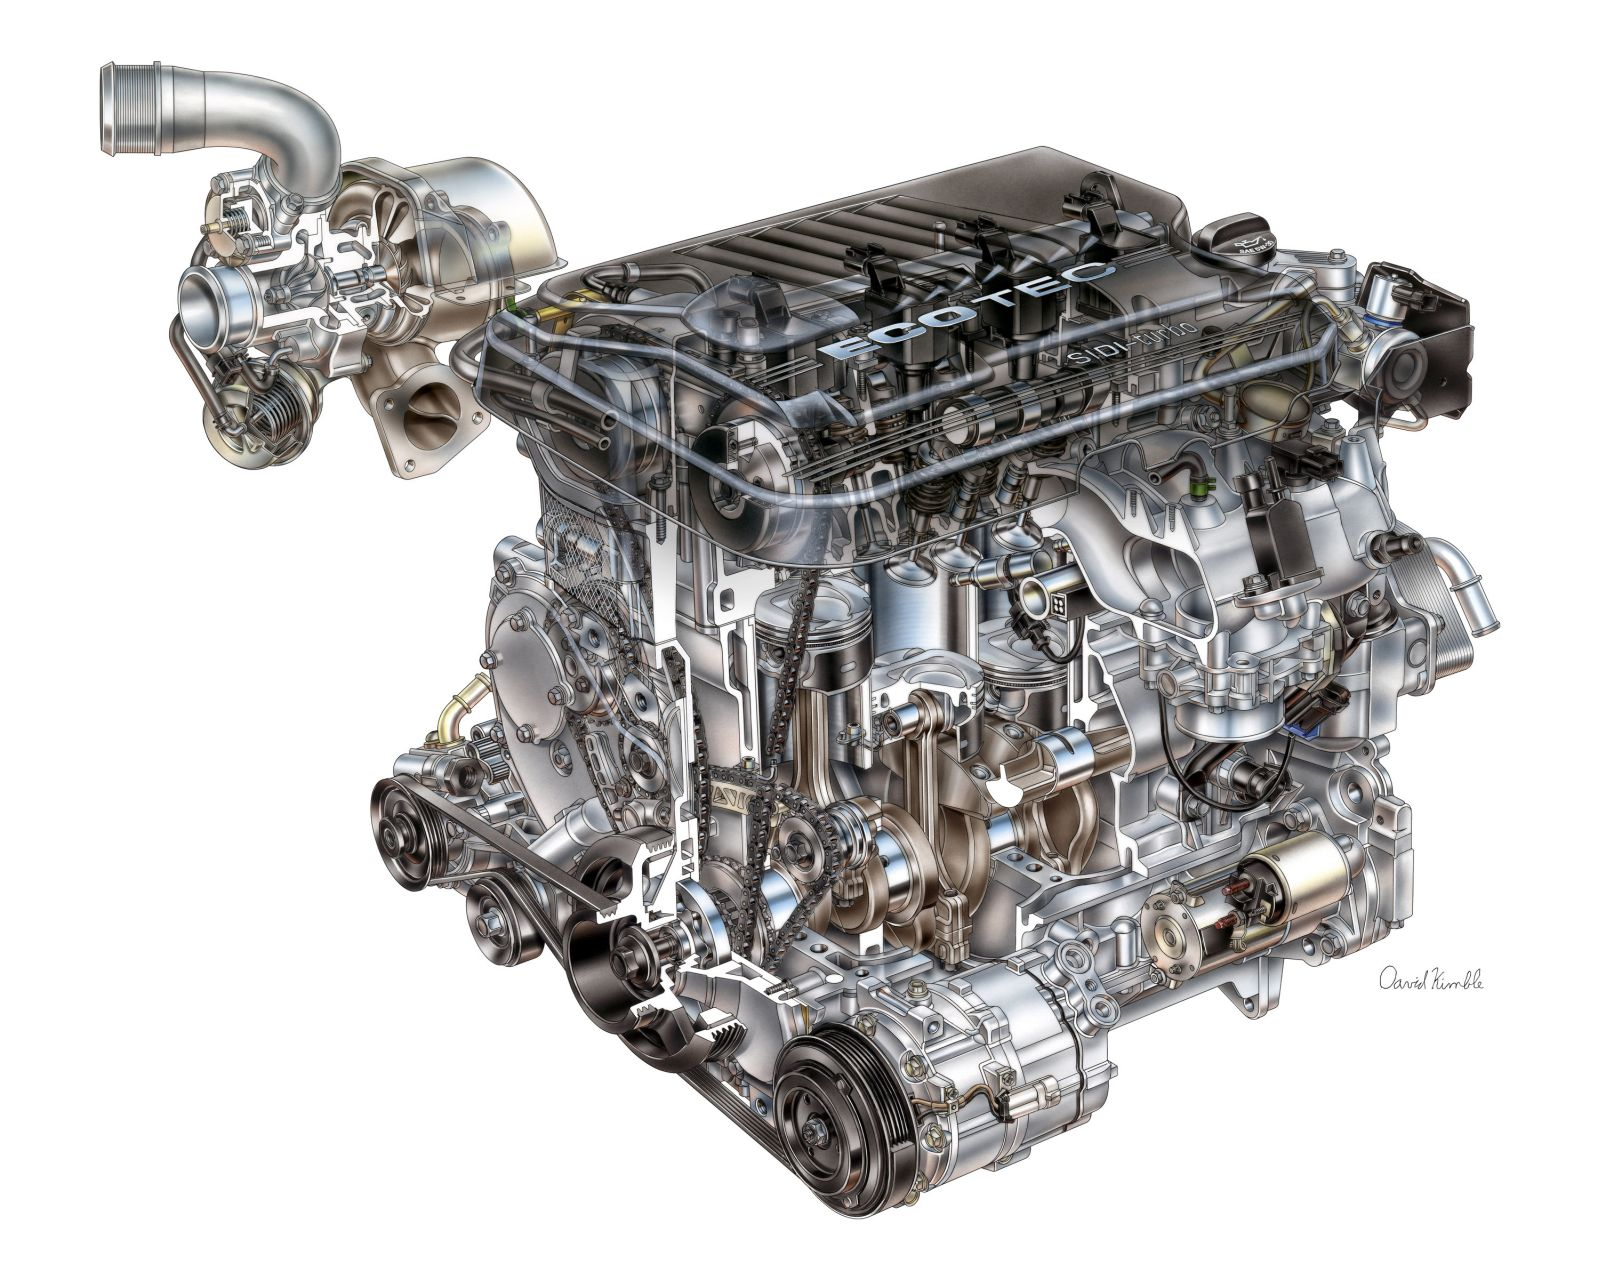 SW_3152] Chevy Ecotec 4 Cylinder Engine On Chevrolet Colorado Wiring  Diagrams Wiring DiagramNorab Nnigh Pical Venet Mill Pap Mang Phae Mohammedshrine Librar Wiring 101